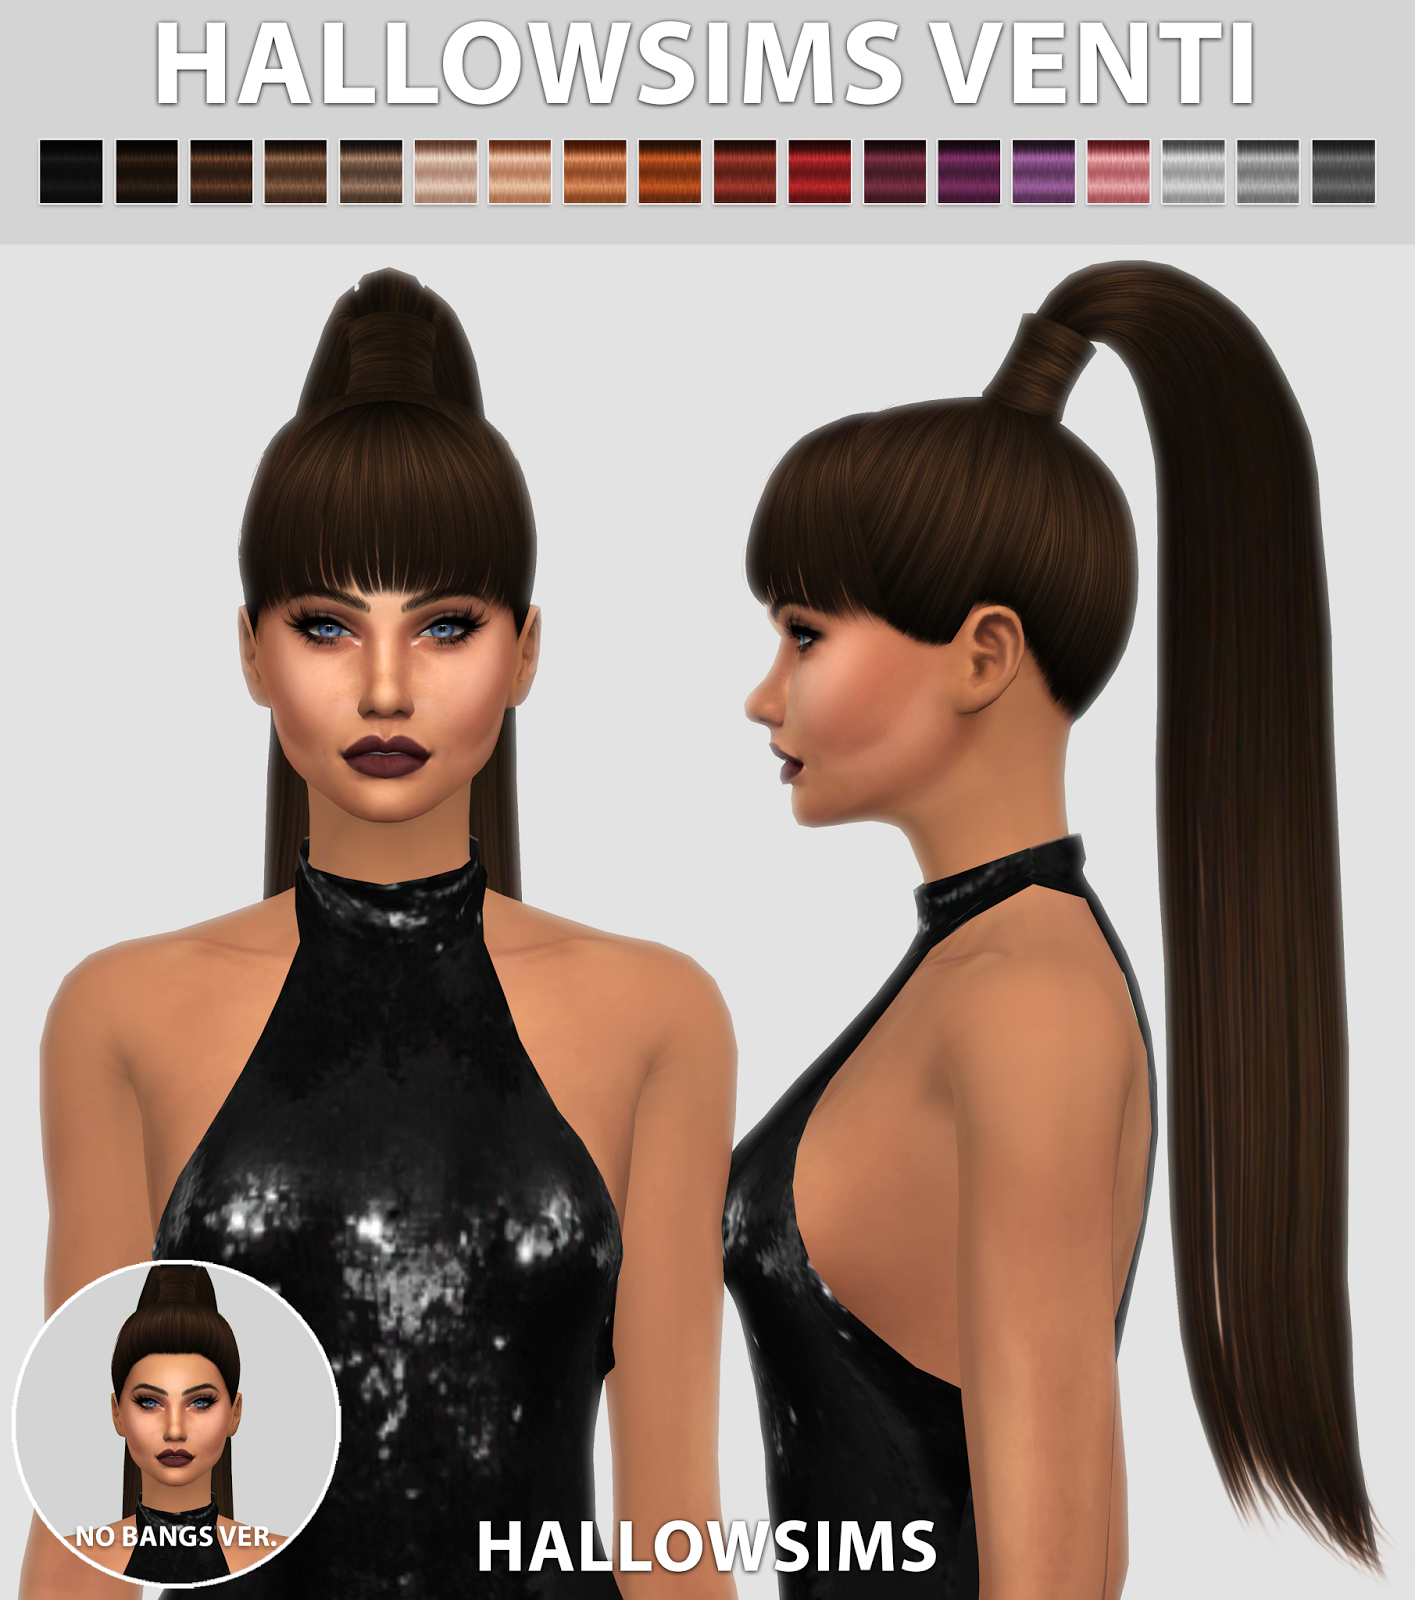 HallowSims Venti 2 Versions Hallow Sims